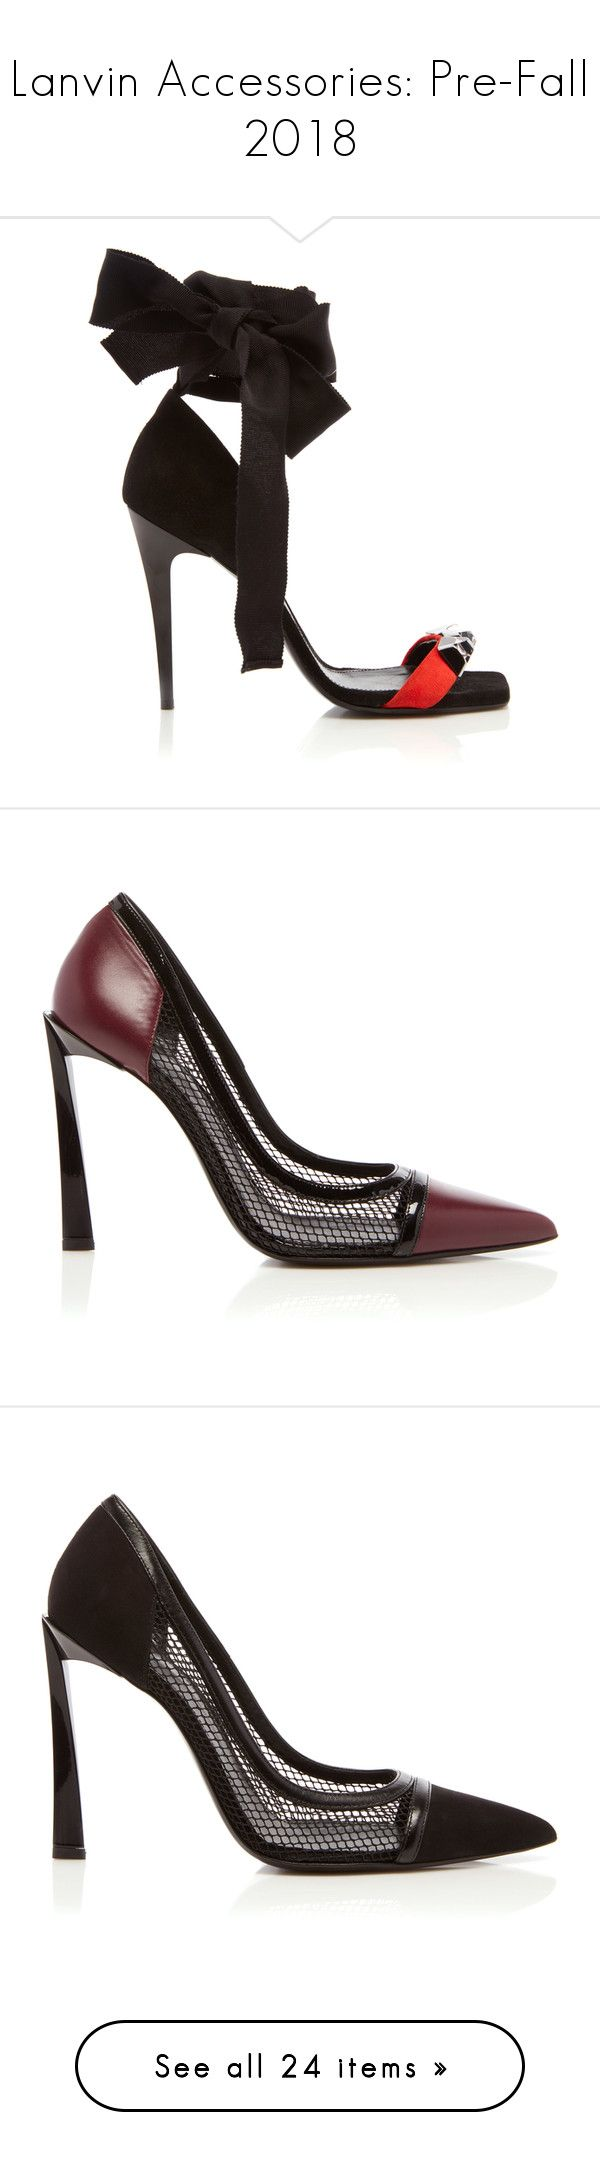 """""""Lanvin Accessories: Pre-Fall 2018"""" by livnd ❤ liked on Polyvore featuring shoes, Lanvin, livndshoes, livndlanvin, prefall2018, sandals, studded sandals, satin shoes, ribbon shoes and embellished sandals"""